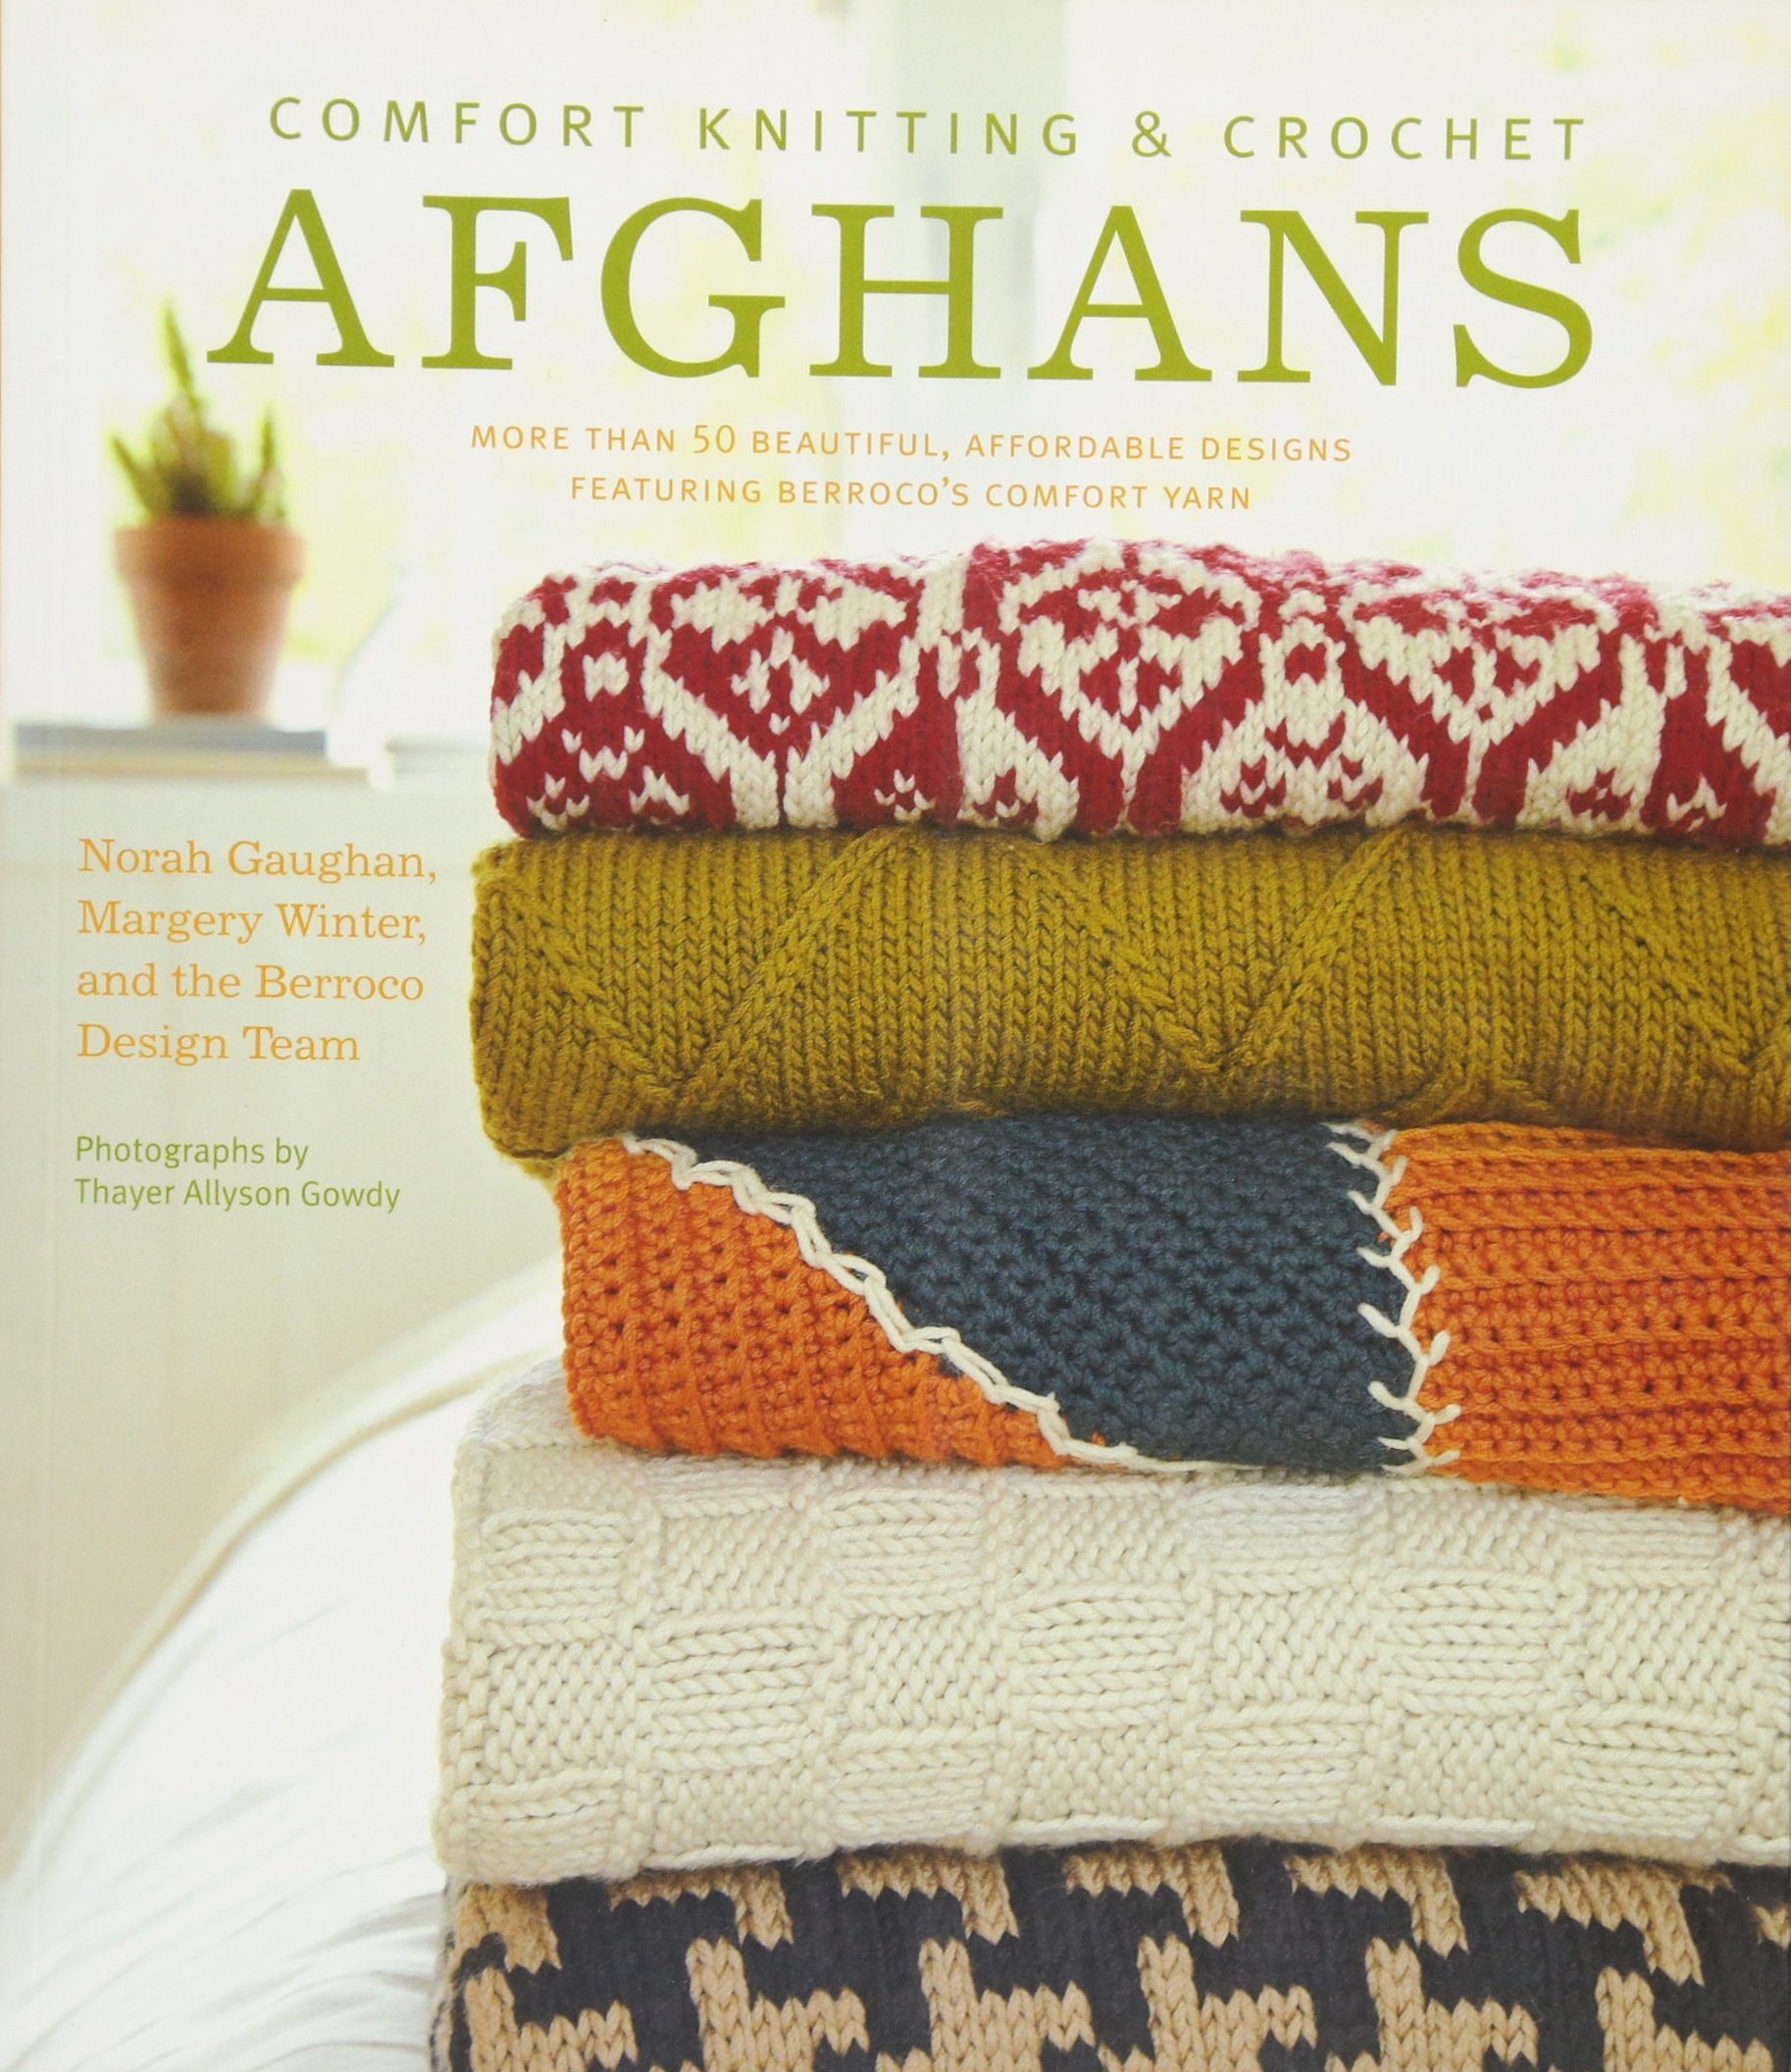 Comfort Knitting and Crochet: Afghans- More than 50 Beautiful Des: More Than 50 Beautiful, Affordable Designs Featuring Berroco's Comfort Yarn